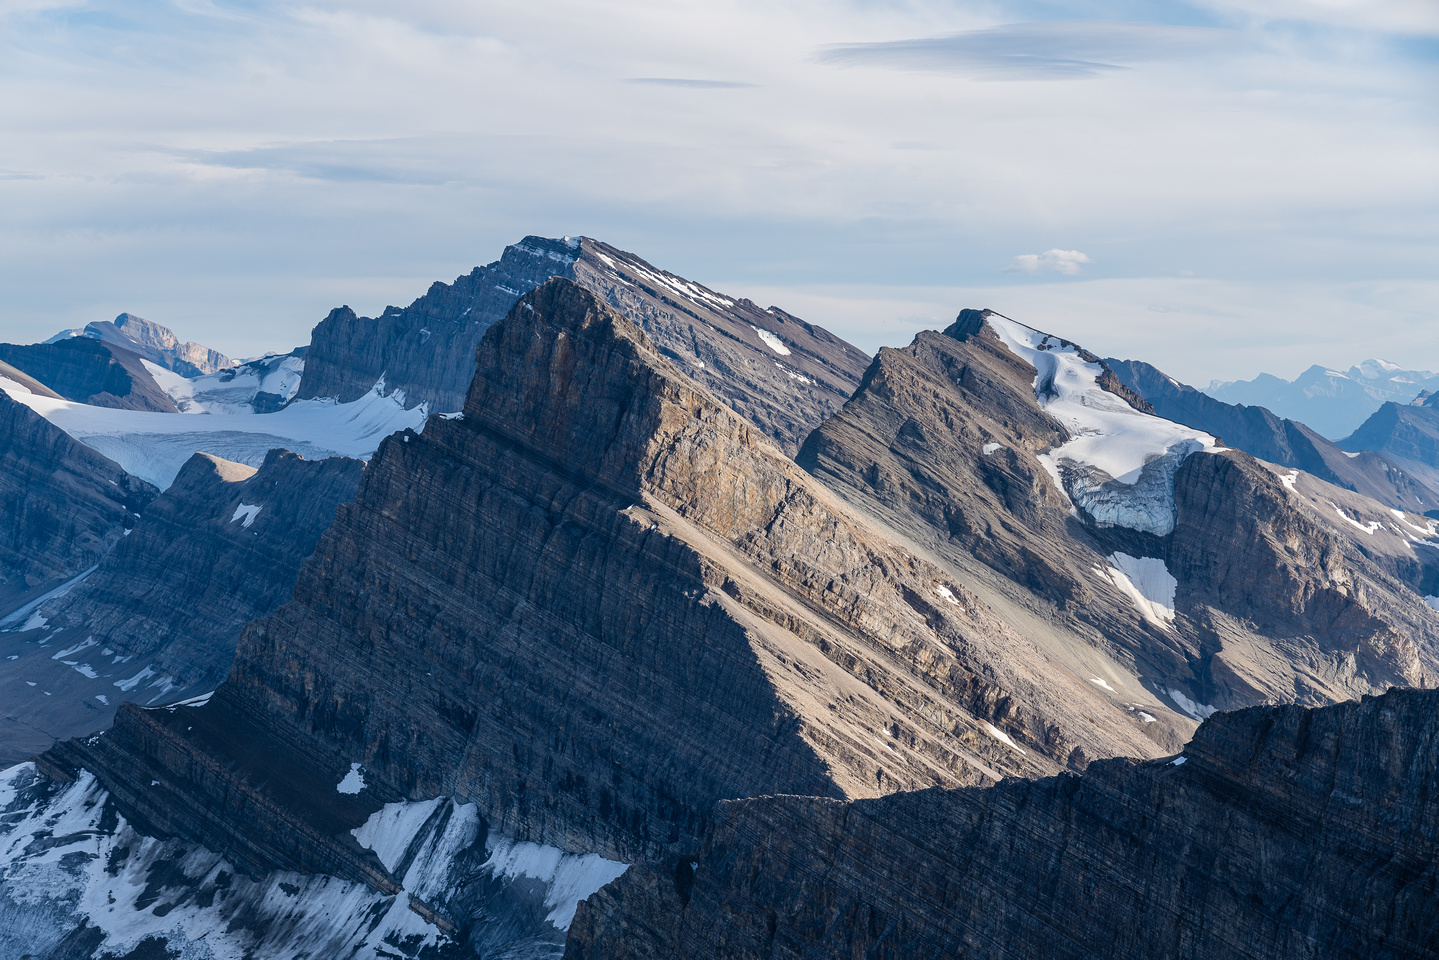 Cataract Peak at center with Little Cataract and its glacier at right.